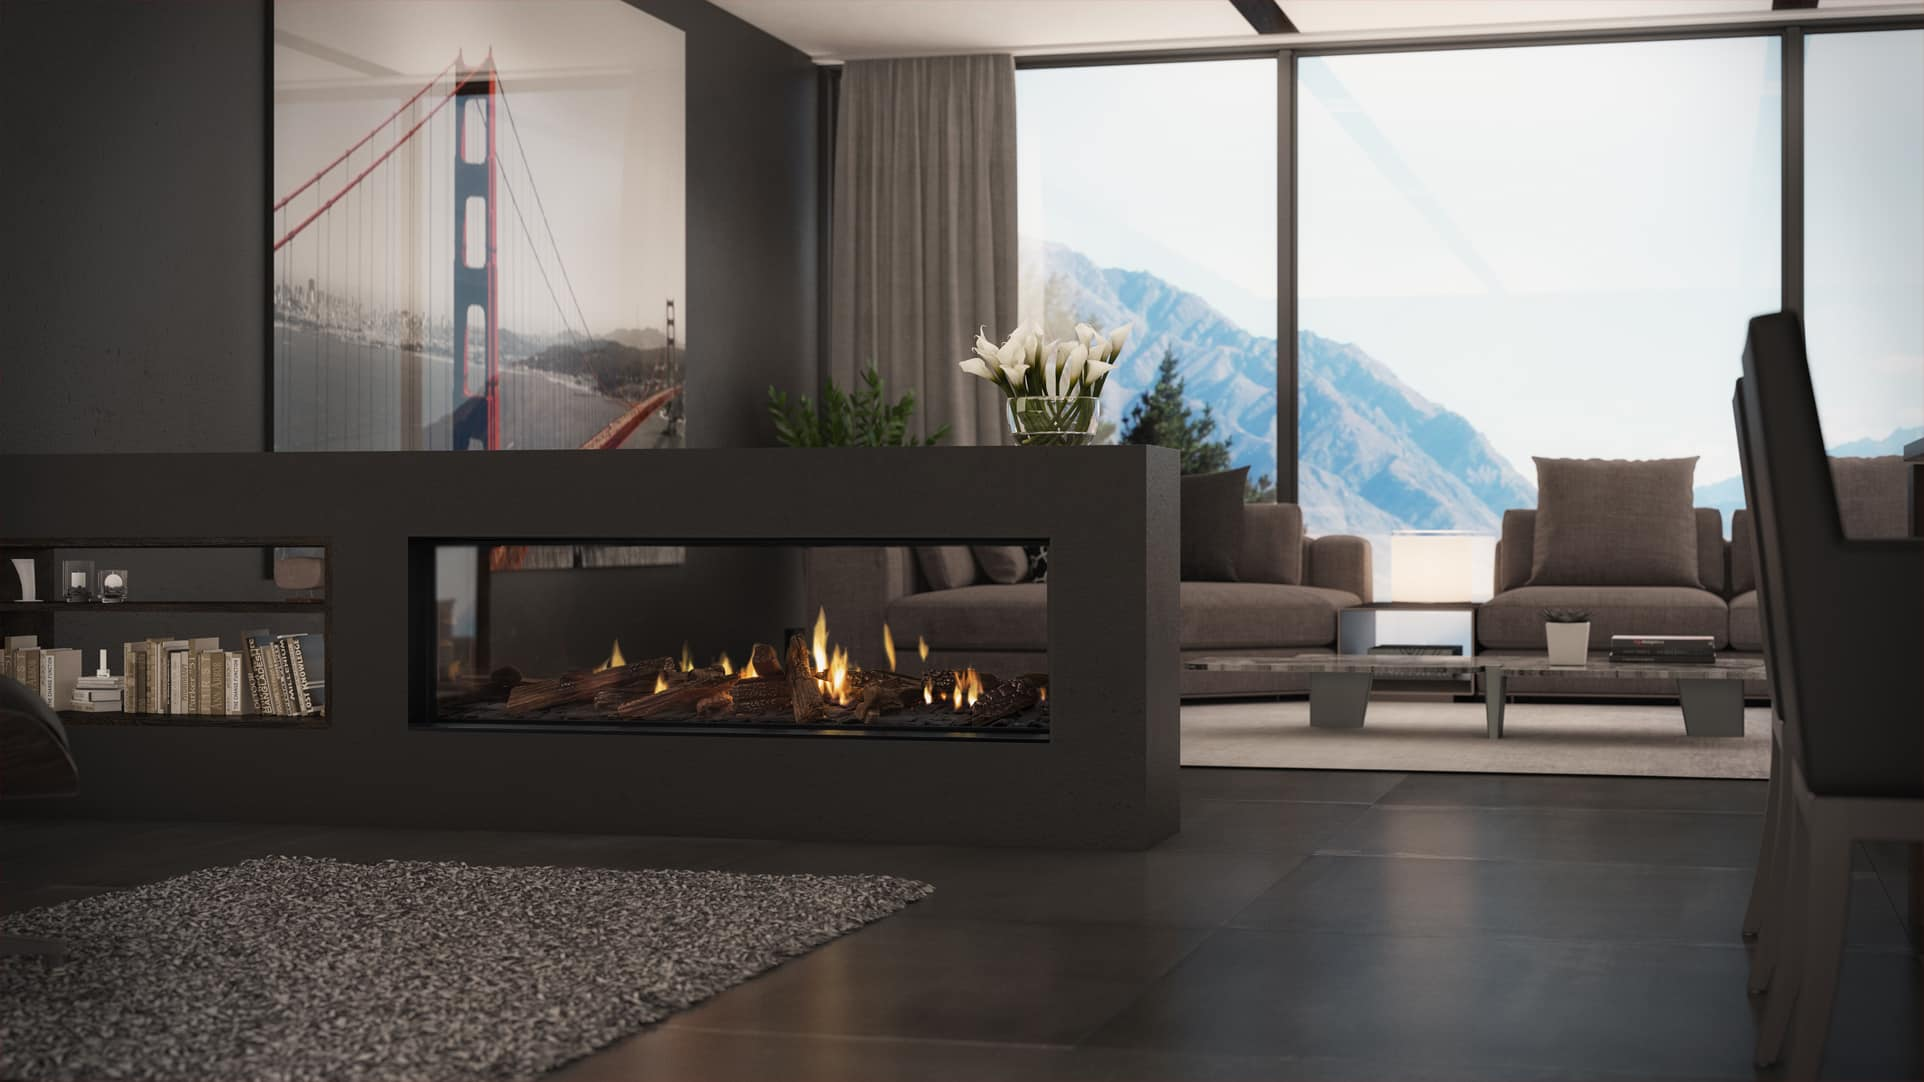 a find stunning point planika stoves focal room panoramic fireplace gas with view inspiration panorama fireplaces sided to provide ideas your for inserts architecturally an and